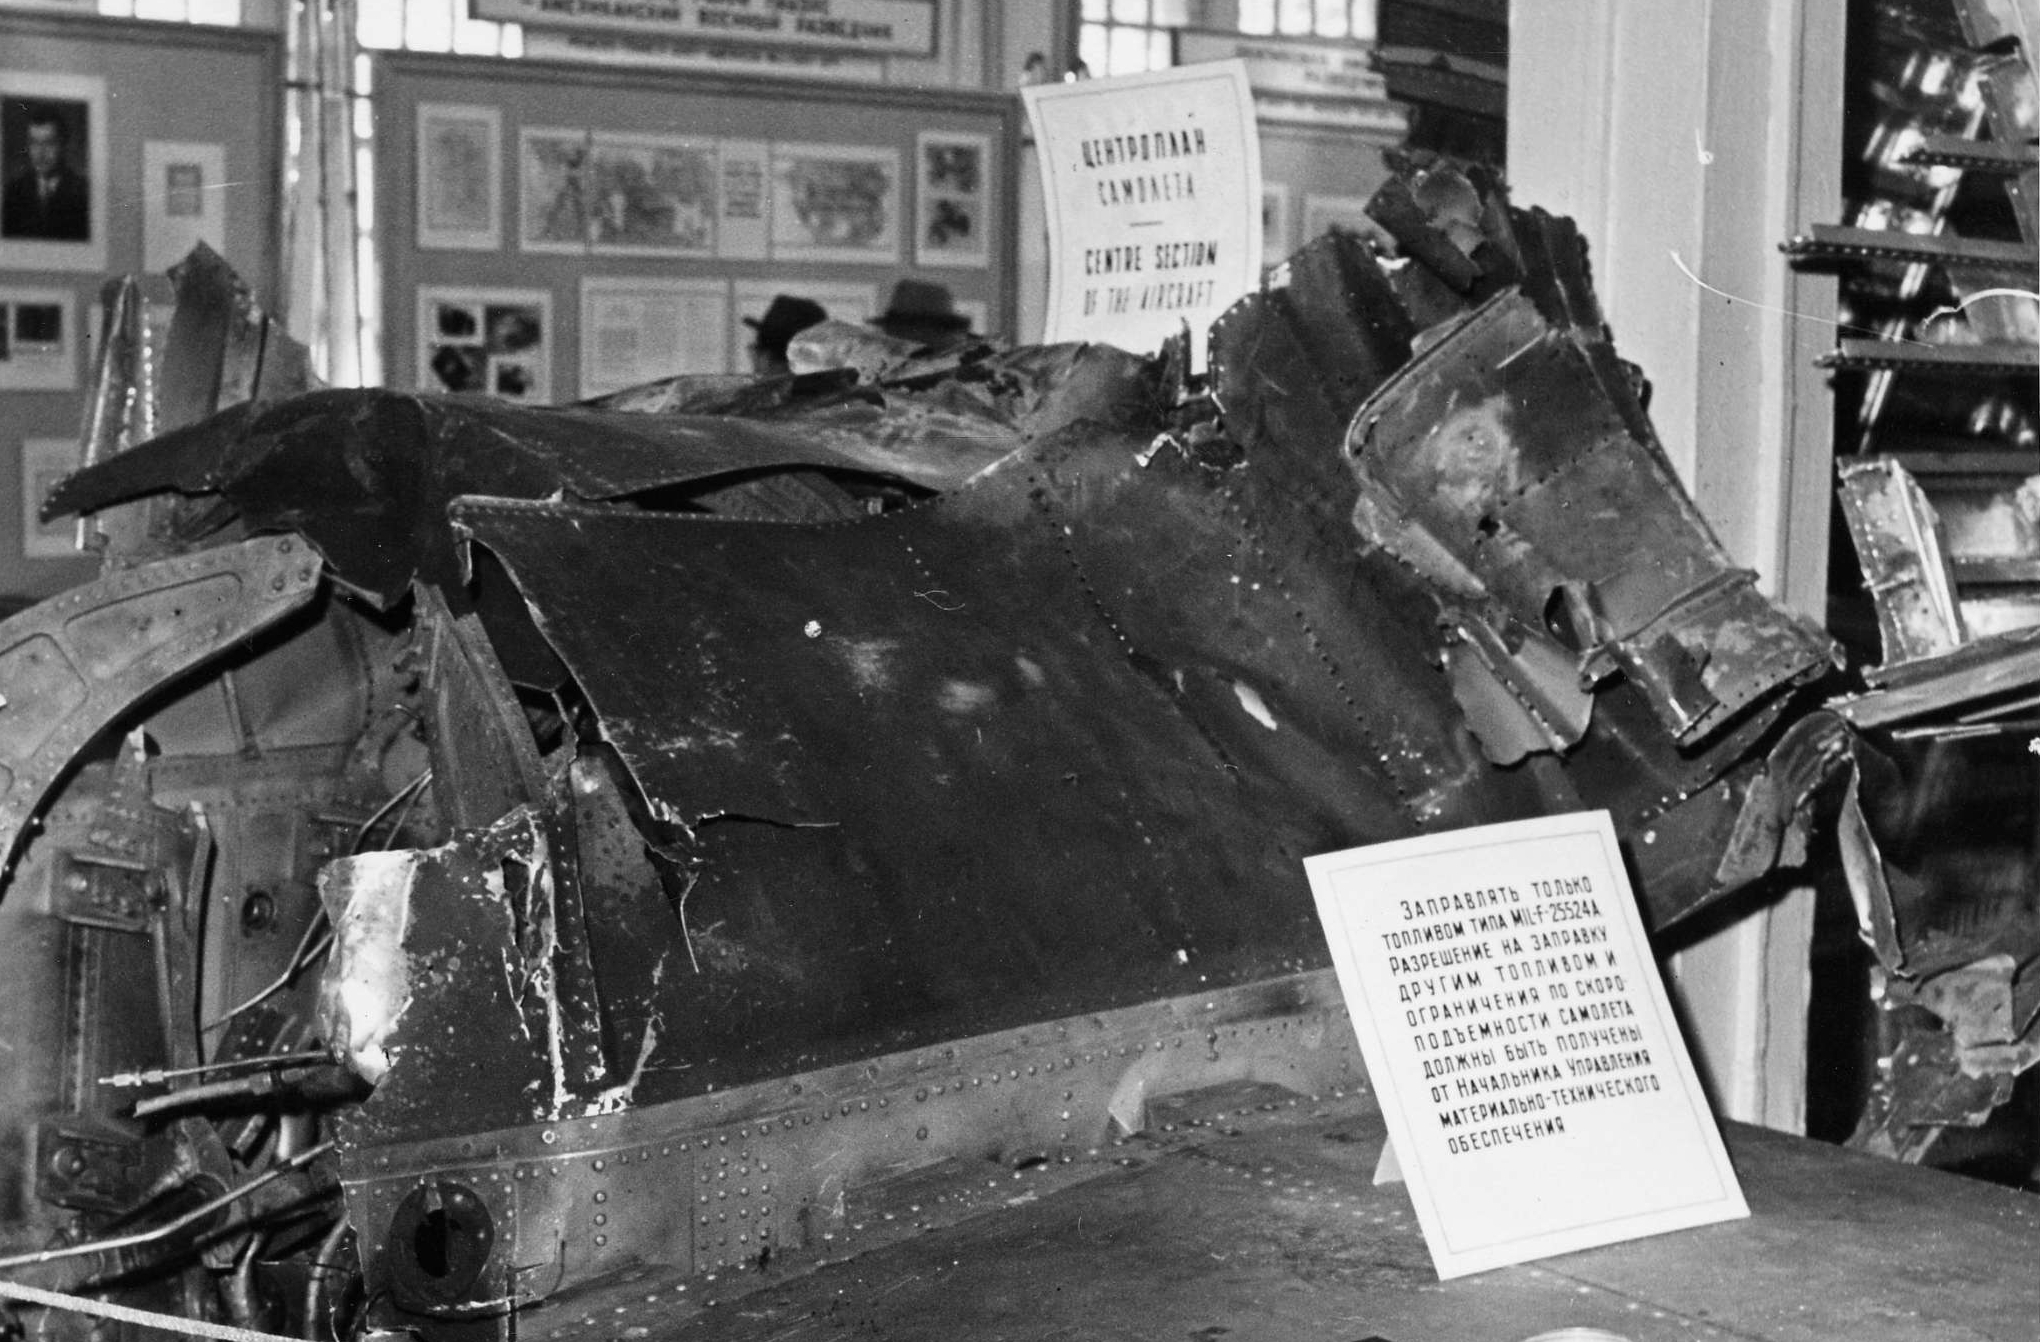 Wreckage from American U2 Plane